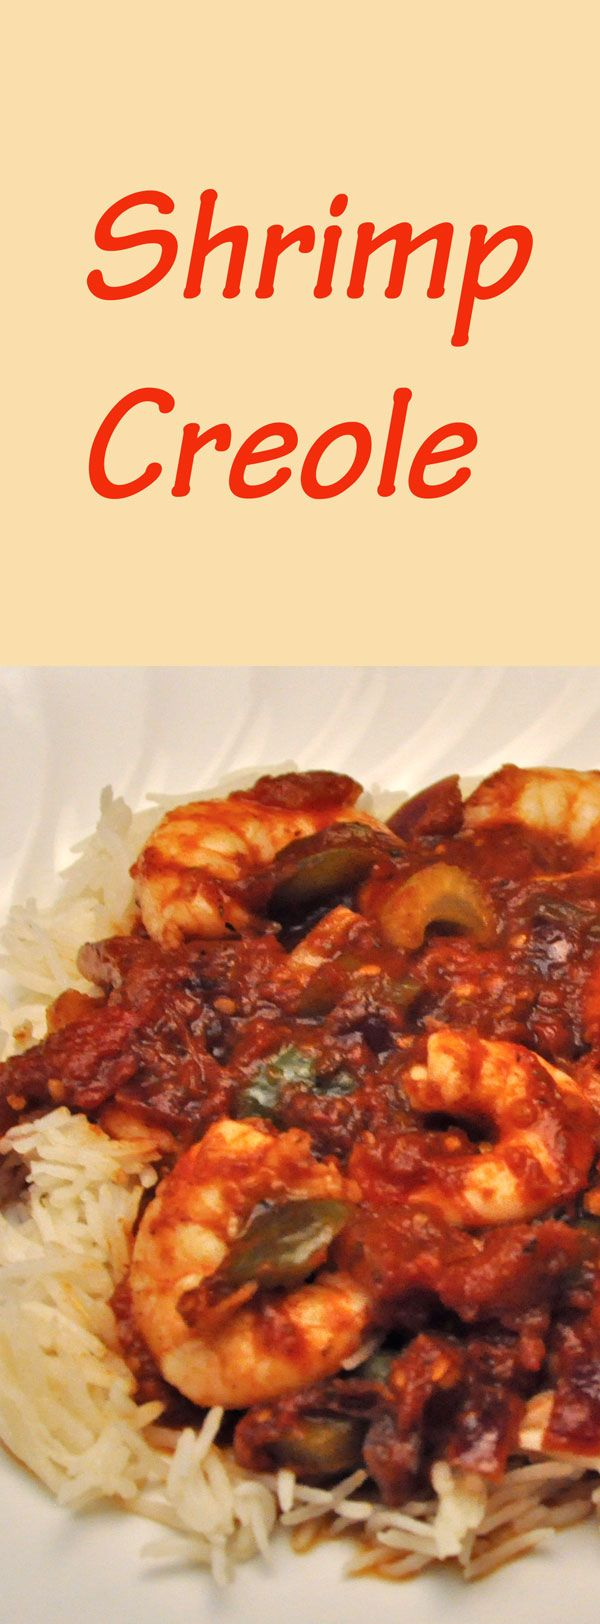 Easy Shrimp Creole on Basmati Rice - make it as hot as you like